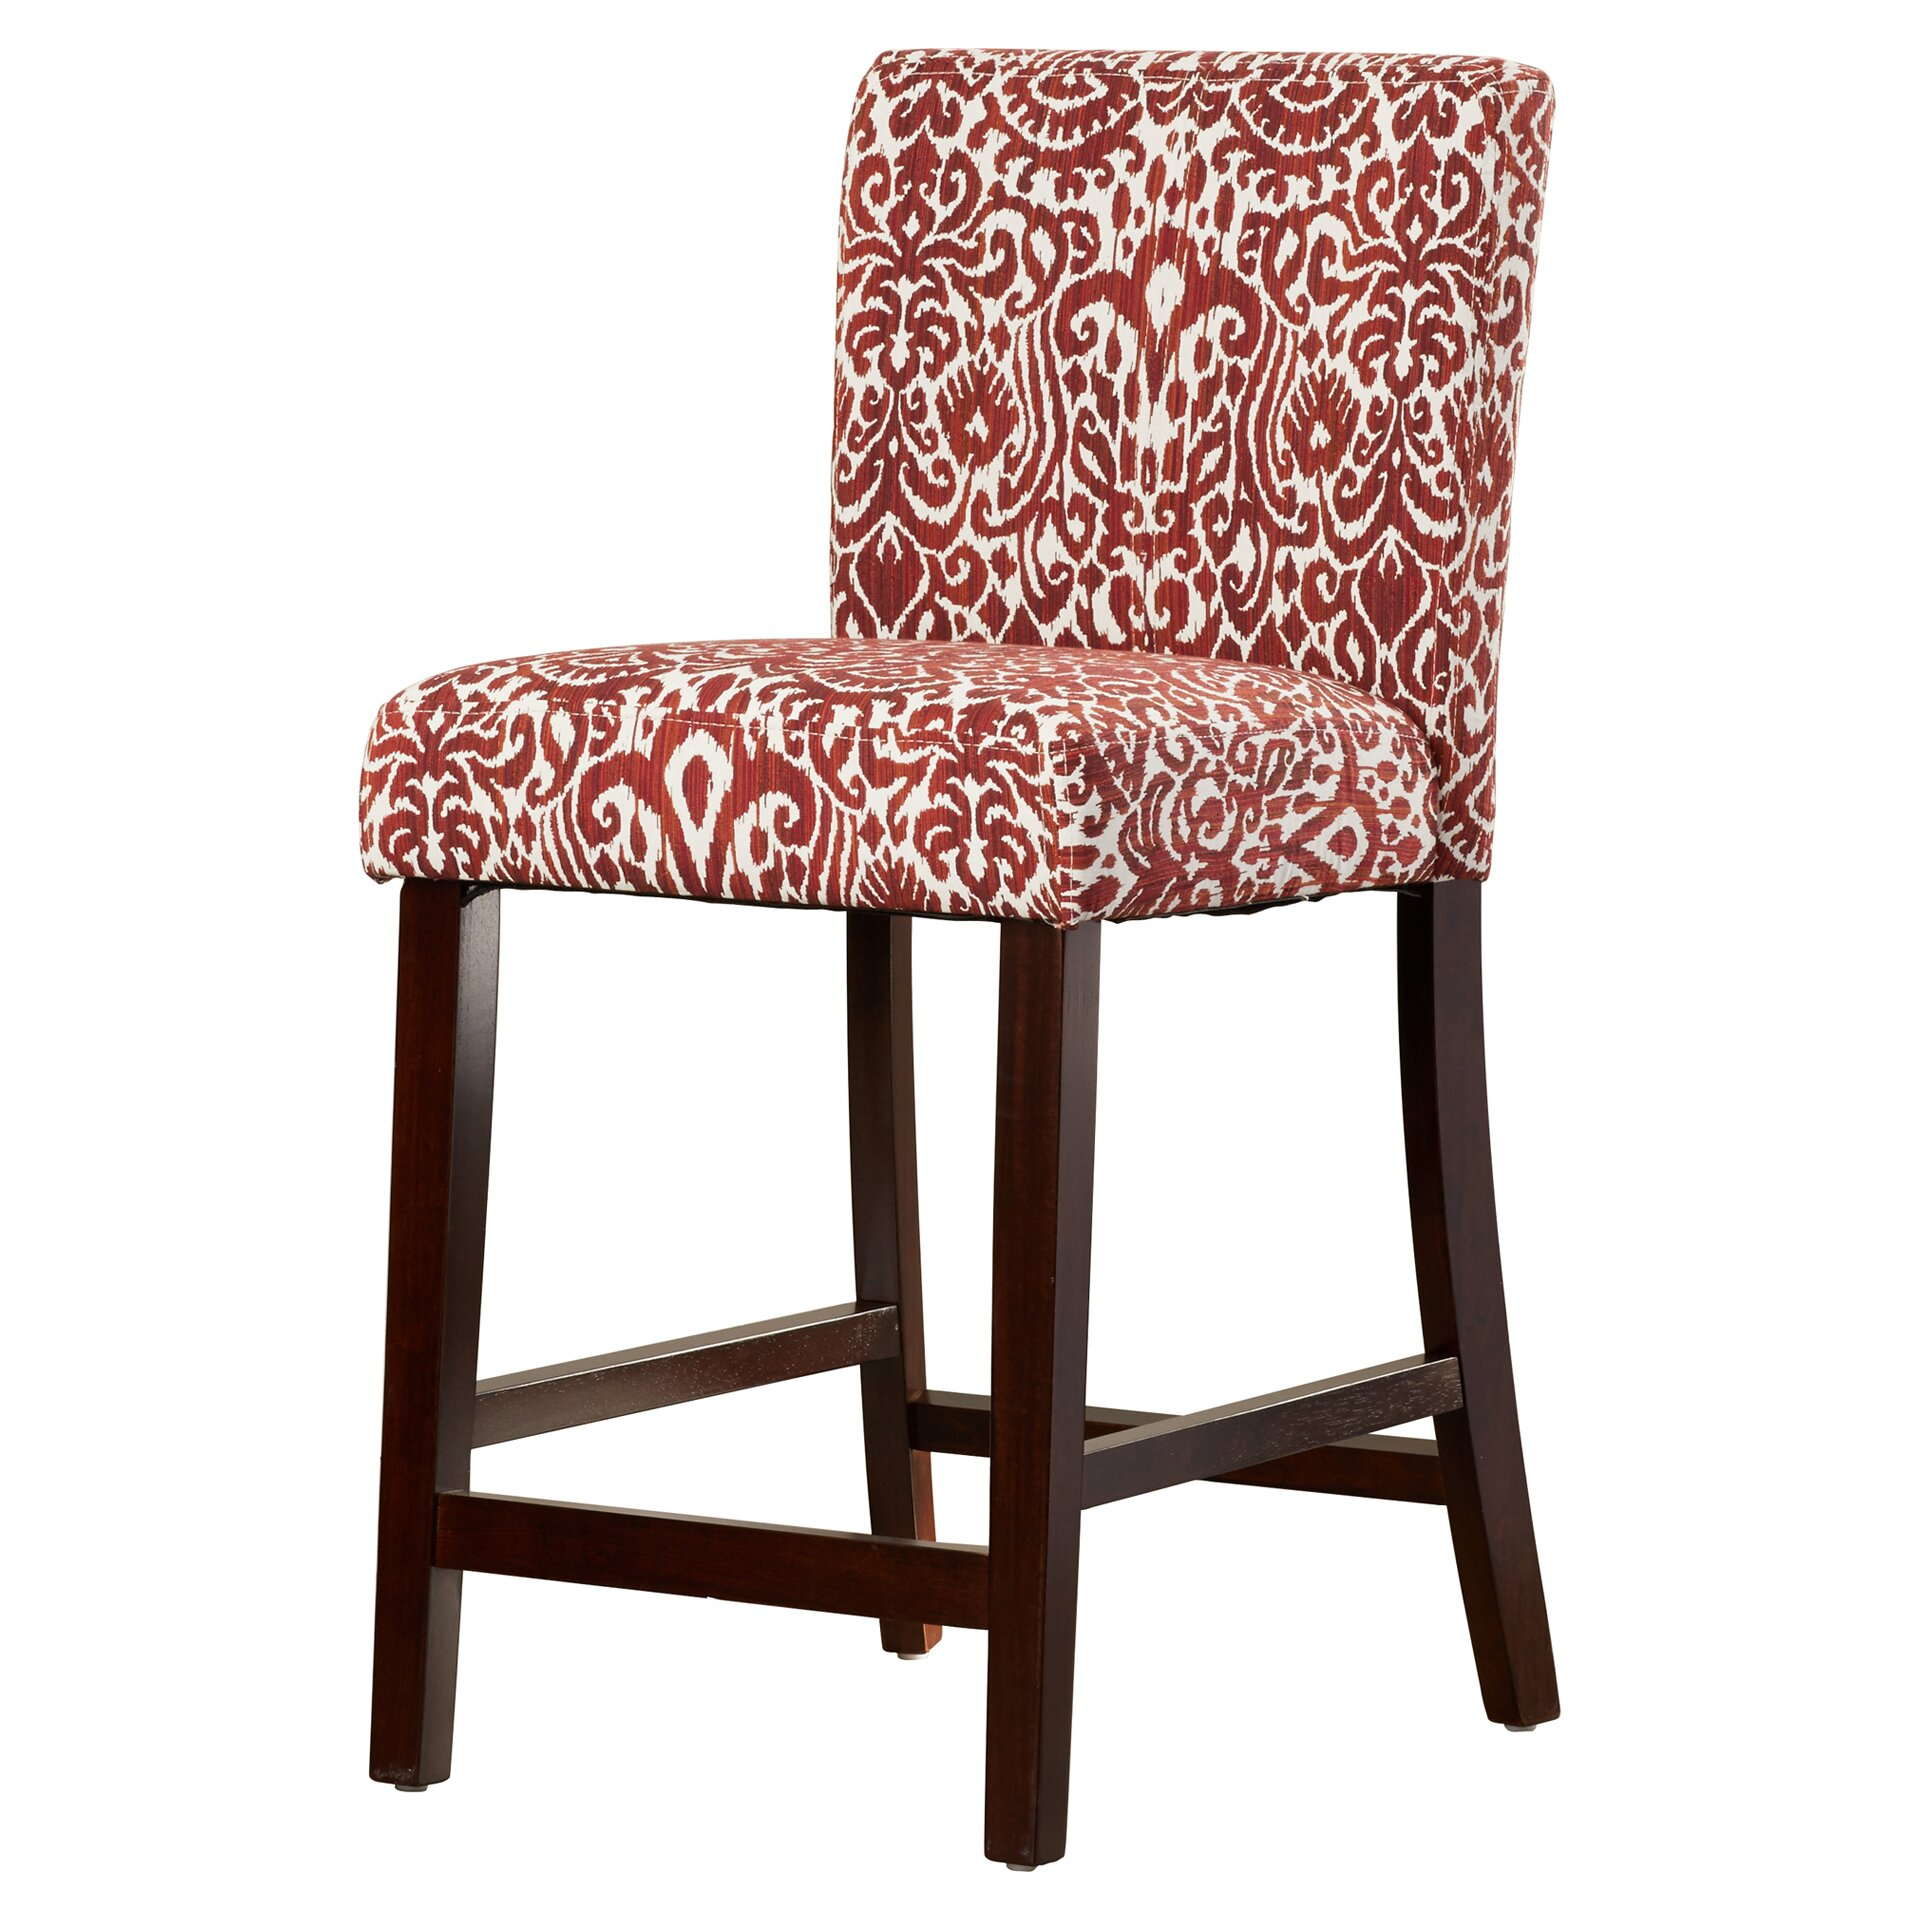 "Darby Home Co Eldred 24"" Bar Stool & Reviews"